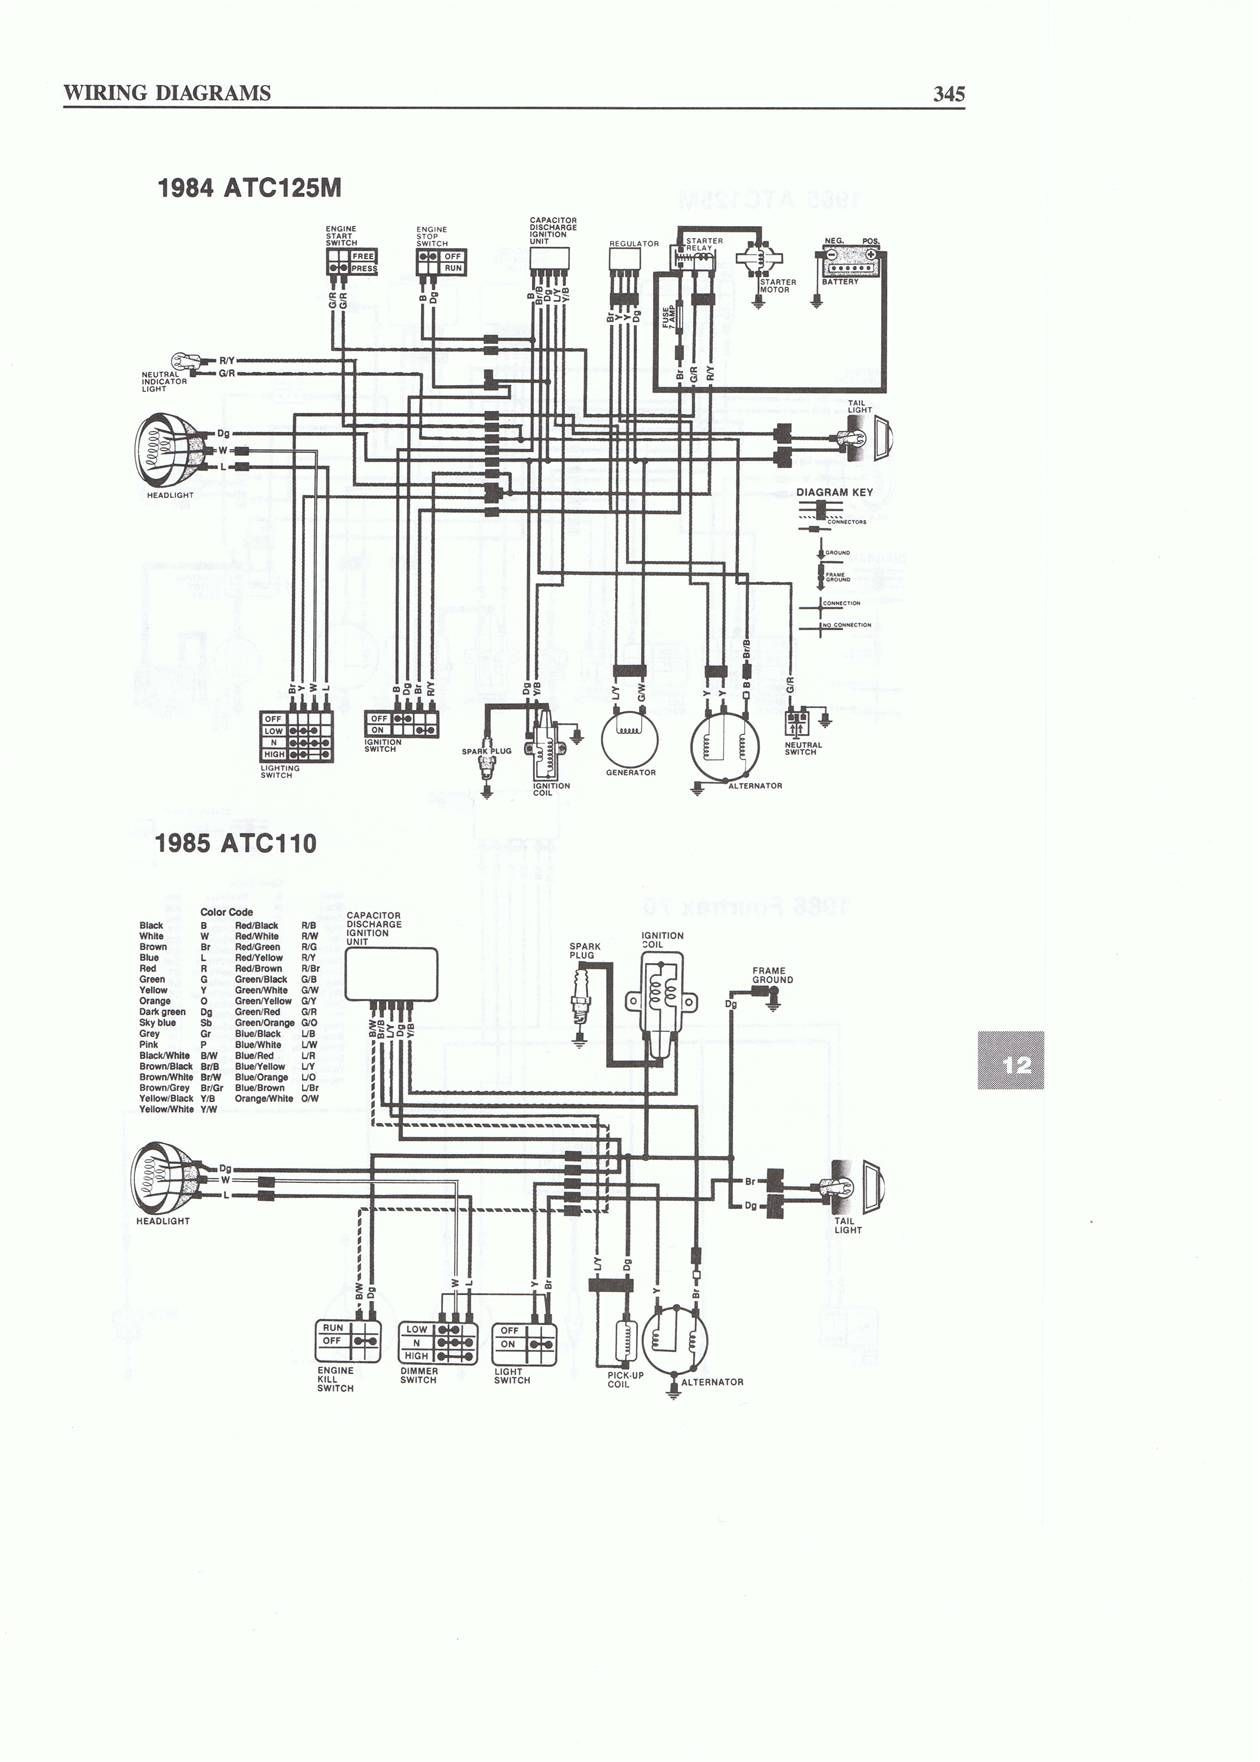 Loncin 110 Atv Wiring Diagram For Chinese With Facybulka Me At 110cc Motorcycle Wiring 90cc Atv Diagram